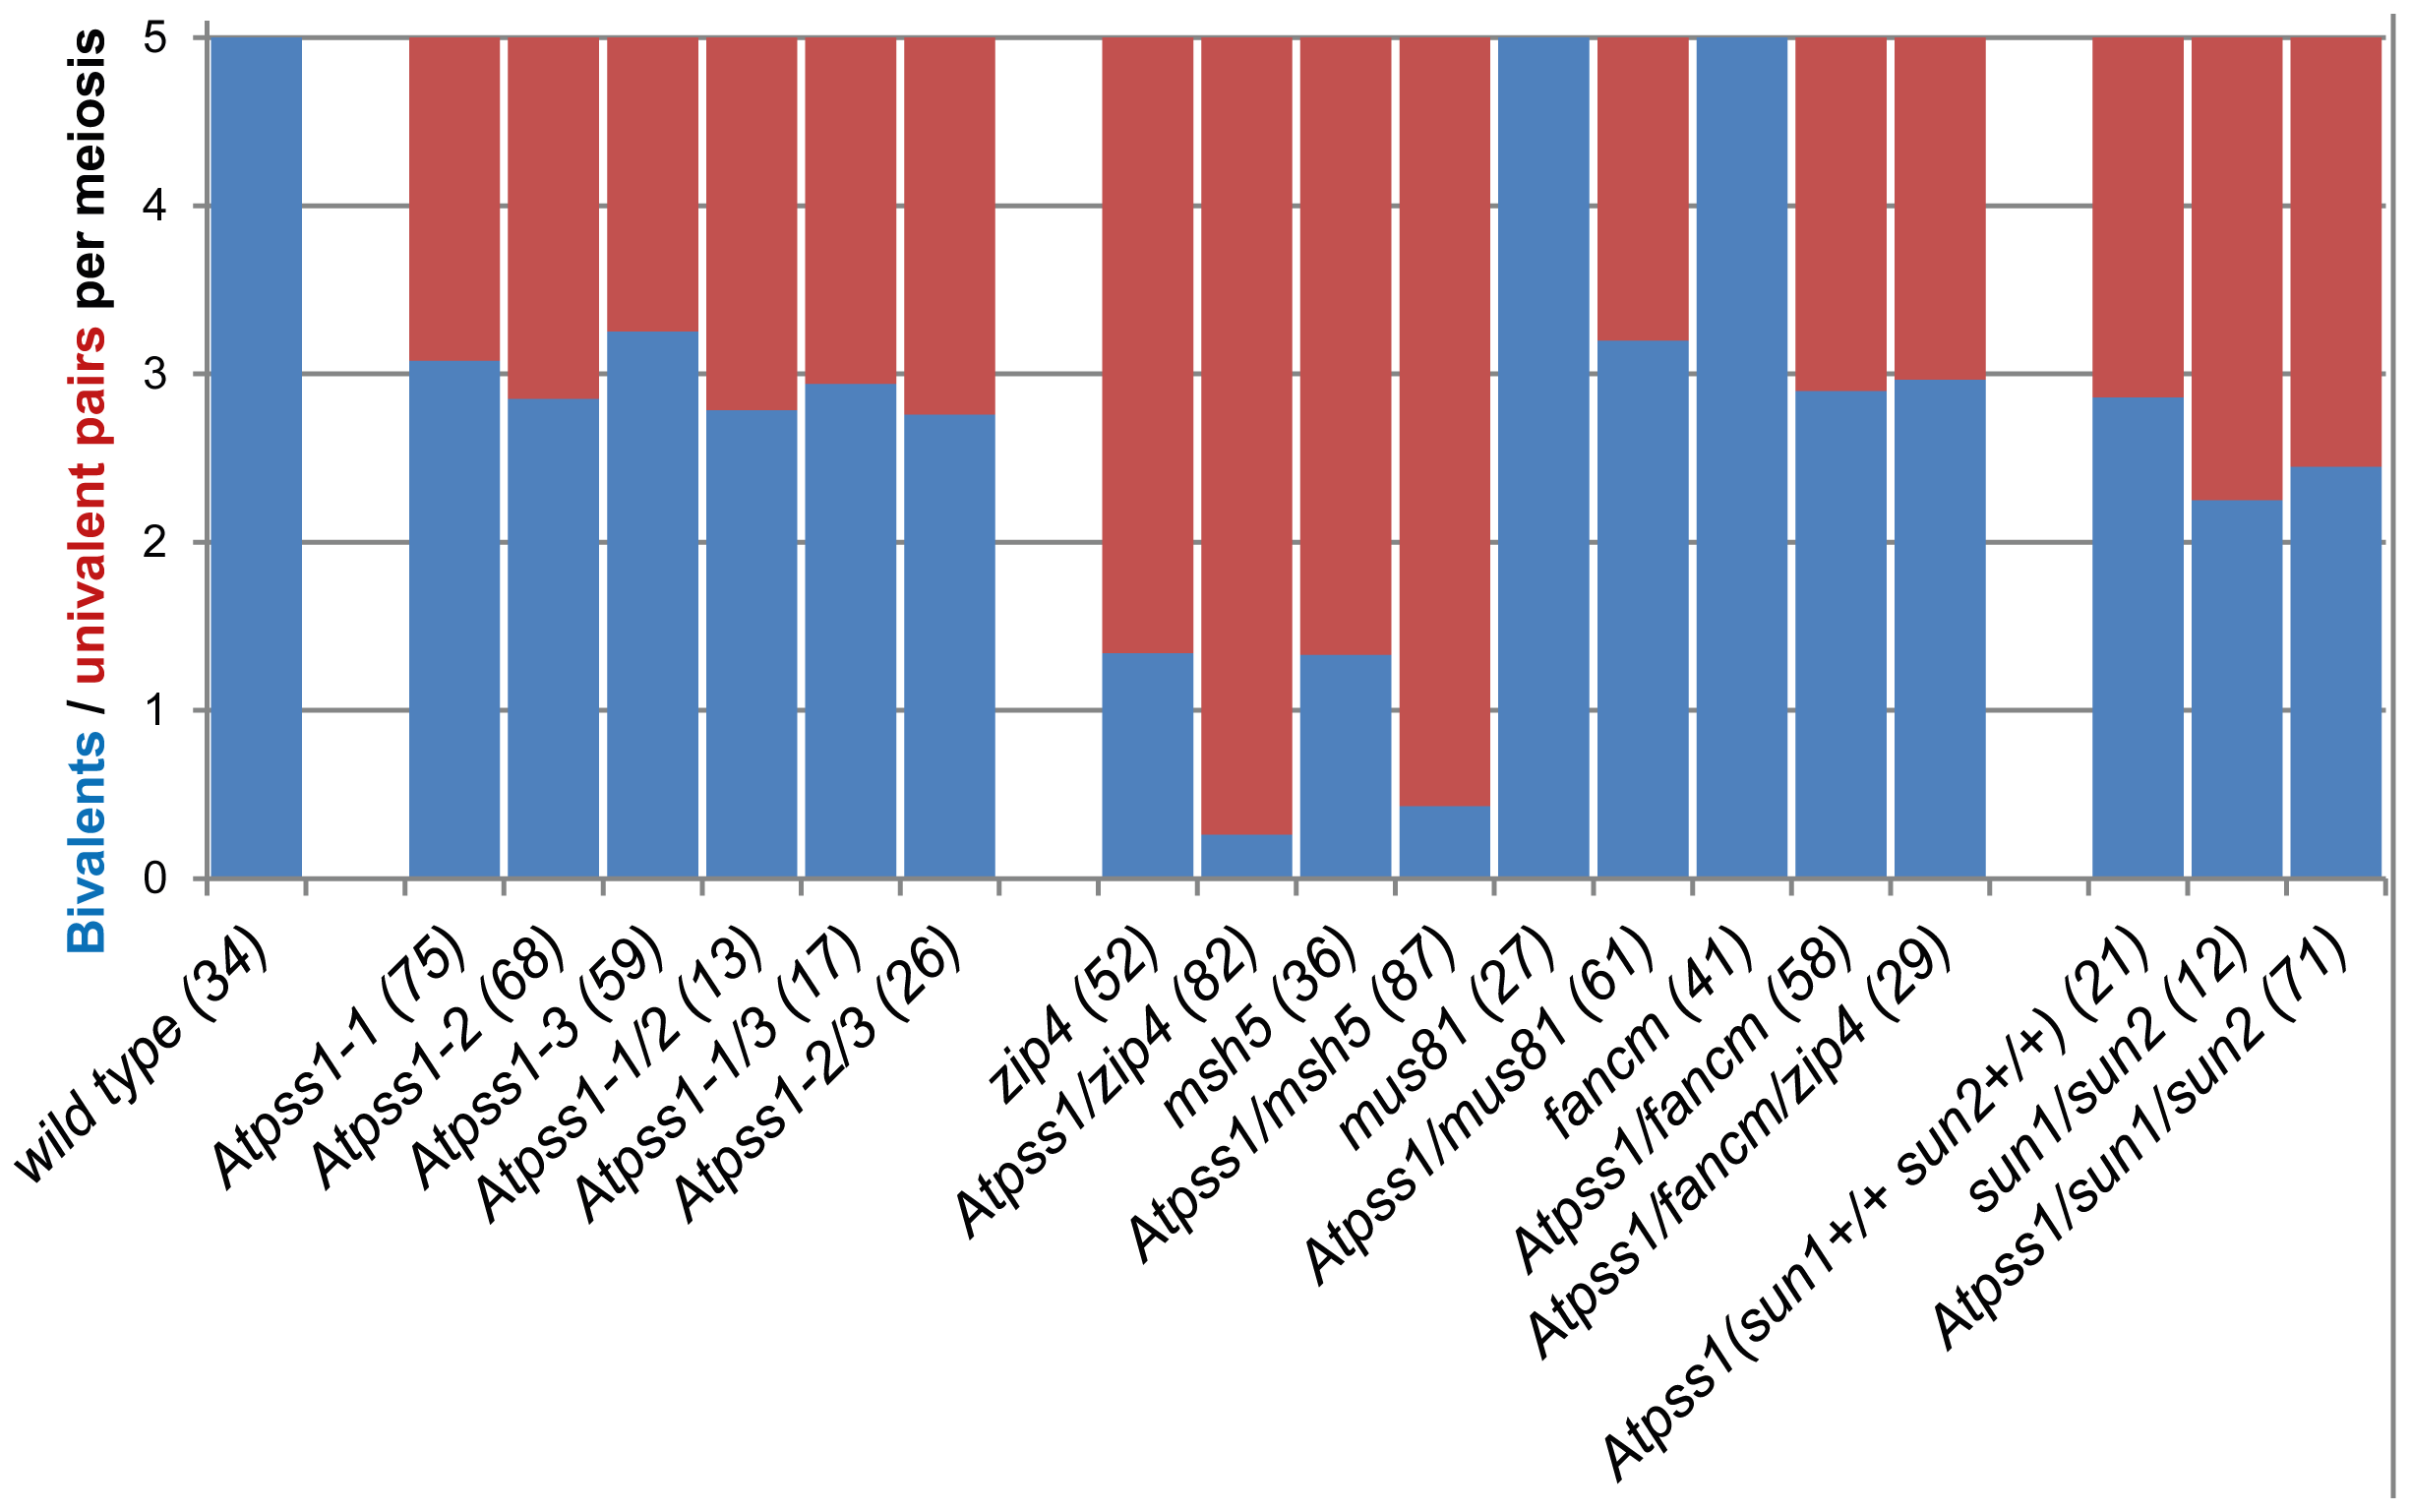 Average number of bivalents (blue) and pairs of univalents (red) per male meiocyte.